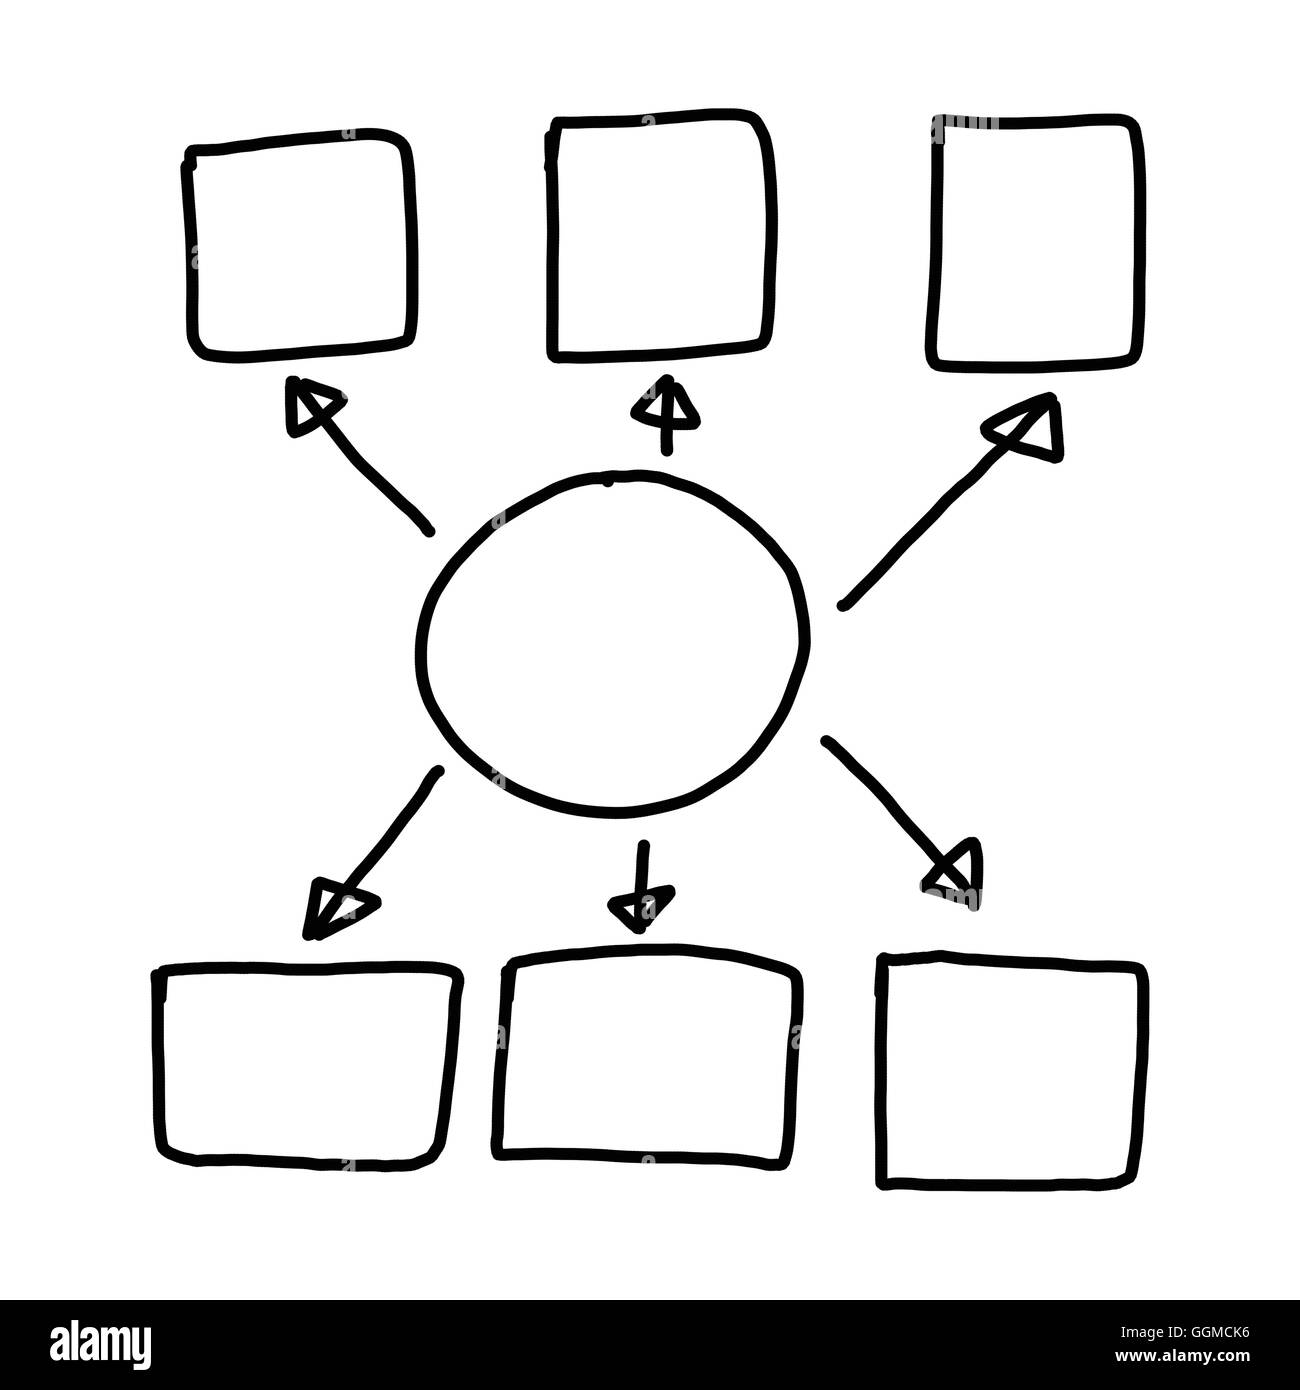 Hand drawn a graphics symbols geometric shapes graph to input stock hand drawn a graphics symbols geometric shapes graph to input information concept of profit in business or system management on ccuart Gallery